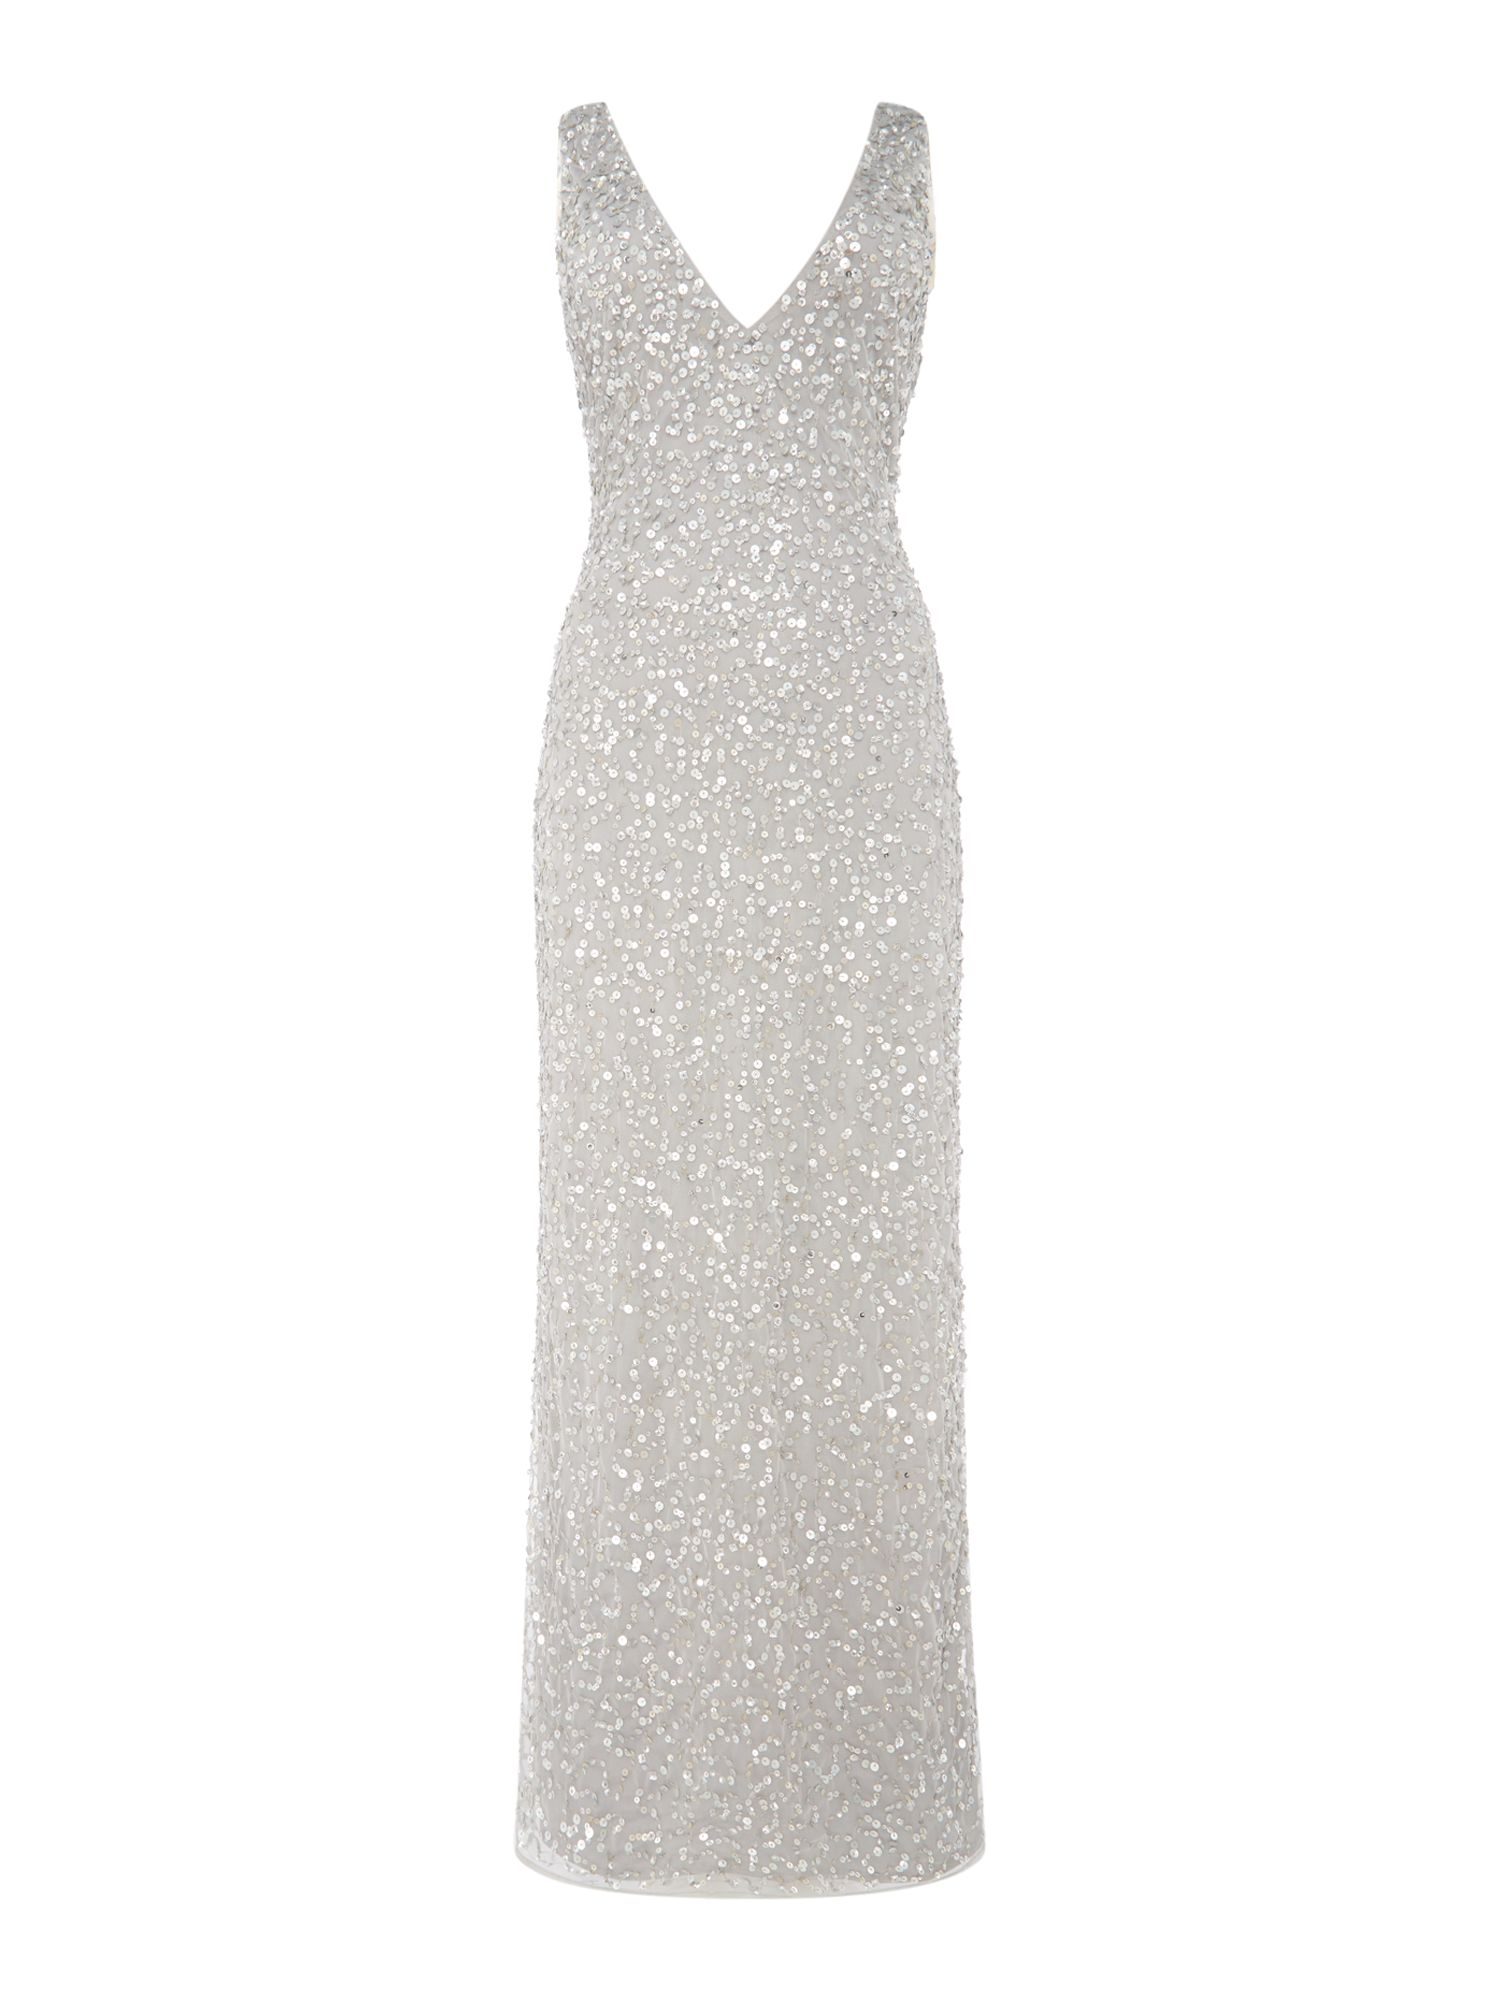 Lace and Beads Lace and Beads Embellished plung neckline maxi dress, Light Grey